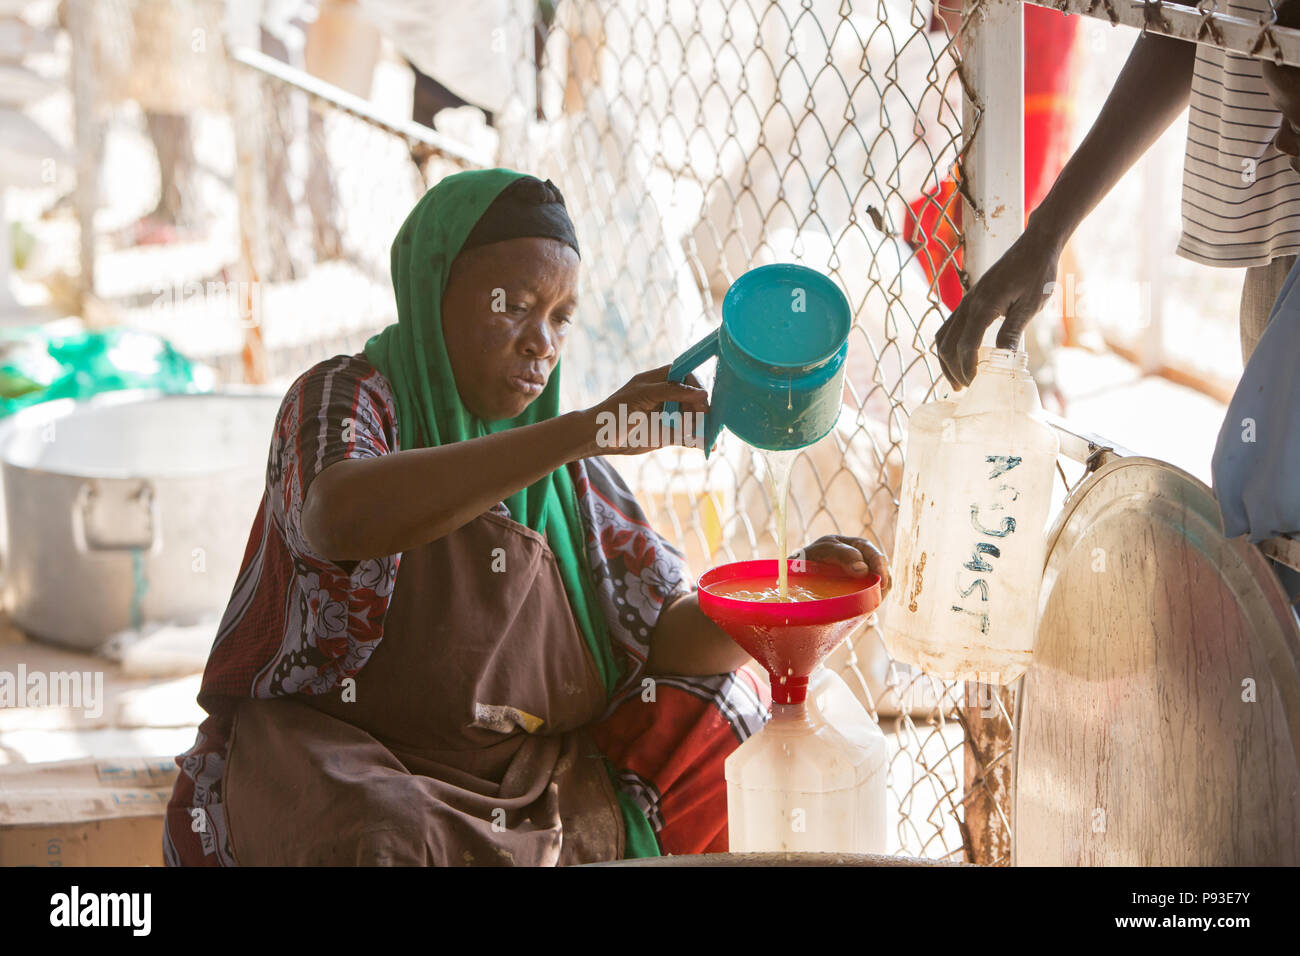 Kakuma, Kenya - Food distribution by the humanitarian aid organization World Food Program in a secure warehouse in the Kakuma refugee camp. - Stock Image